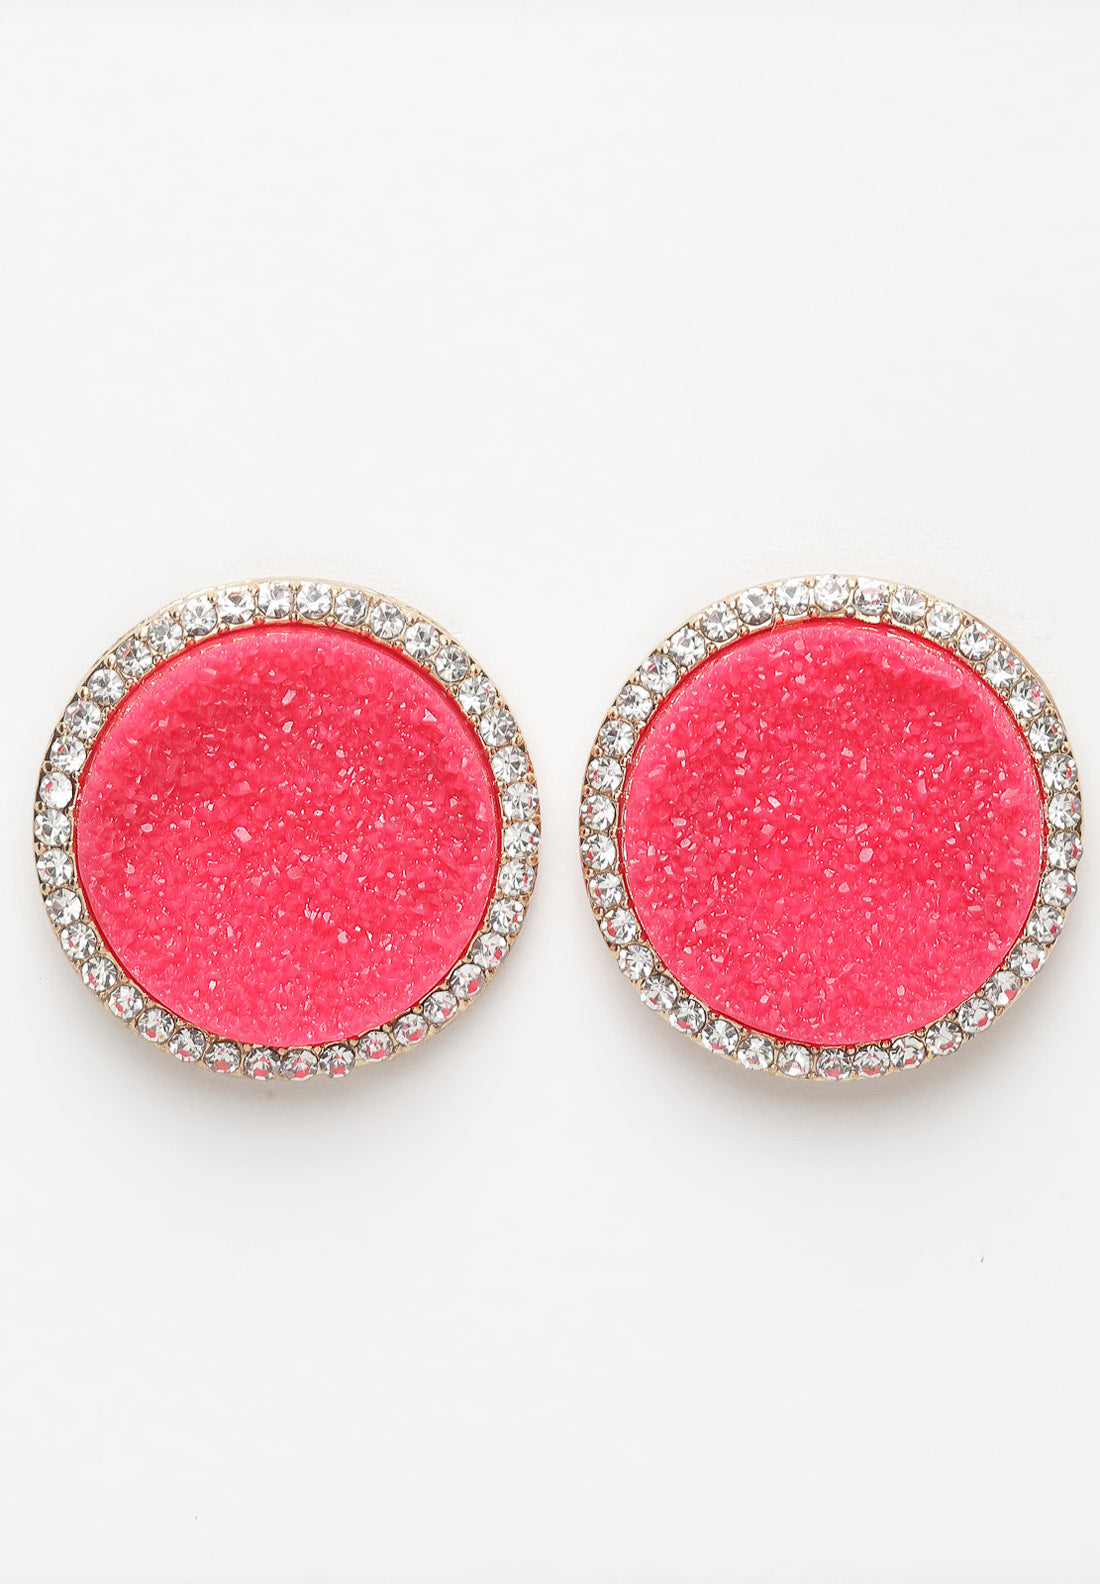 Avant-Garde Paris Pink Round Crystal Stud Earrings